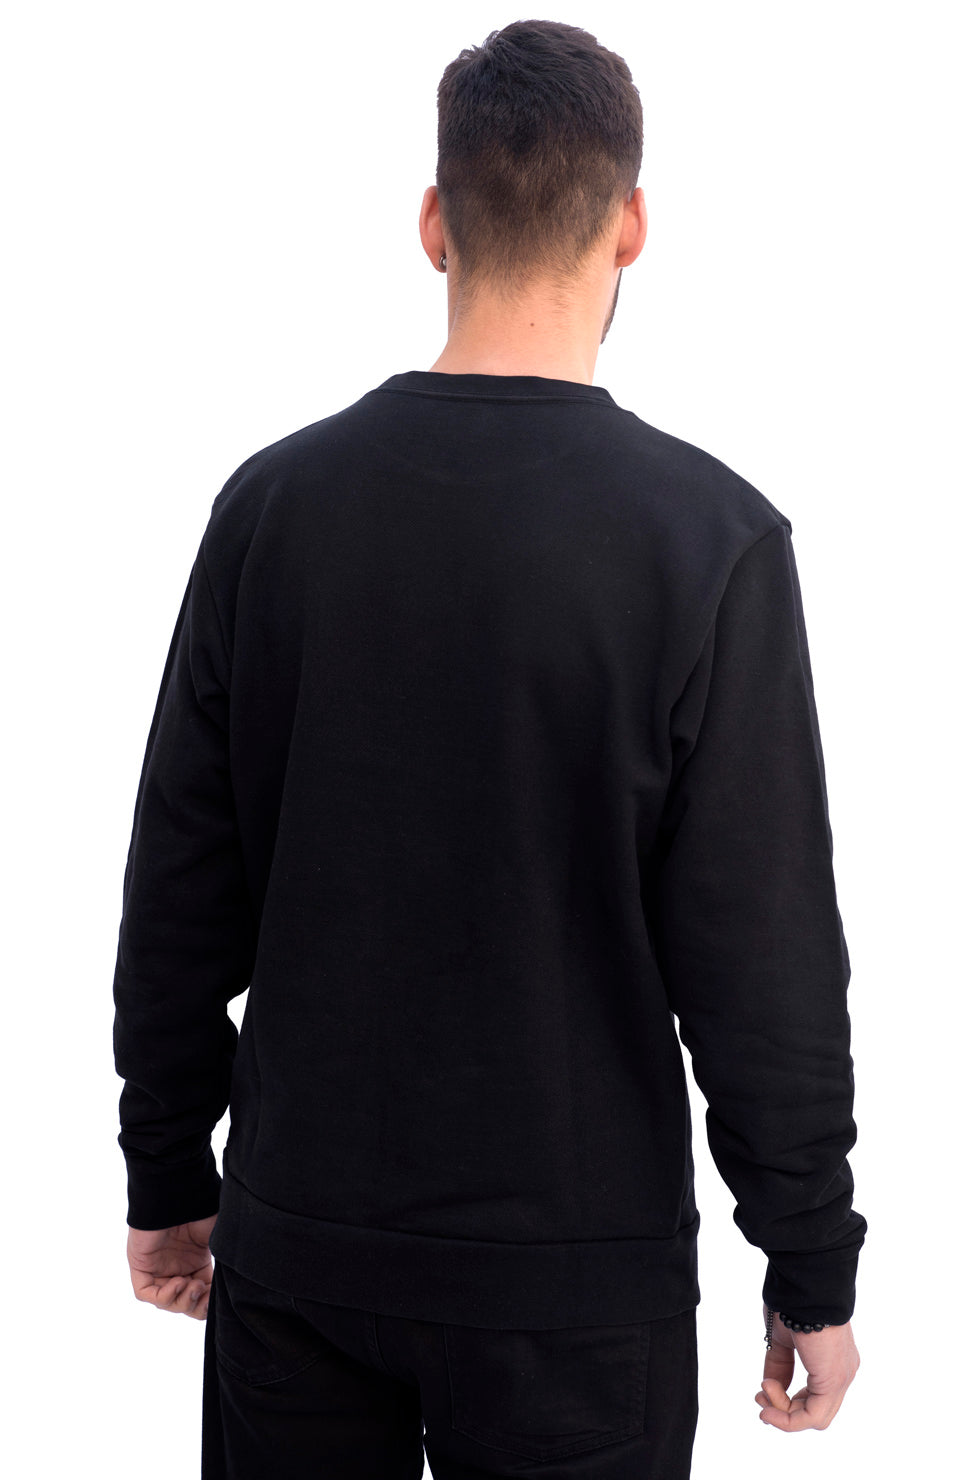 SS19 MARIA by fifty Sweatshirt Black W2 Inverse White back